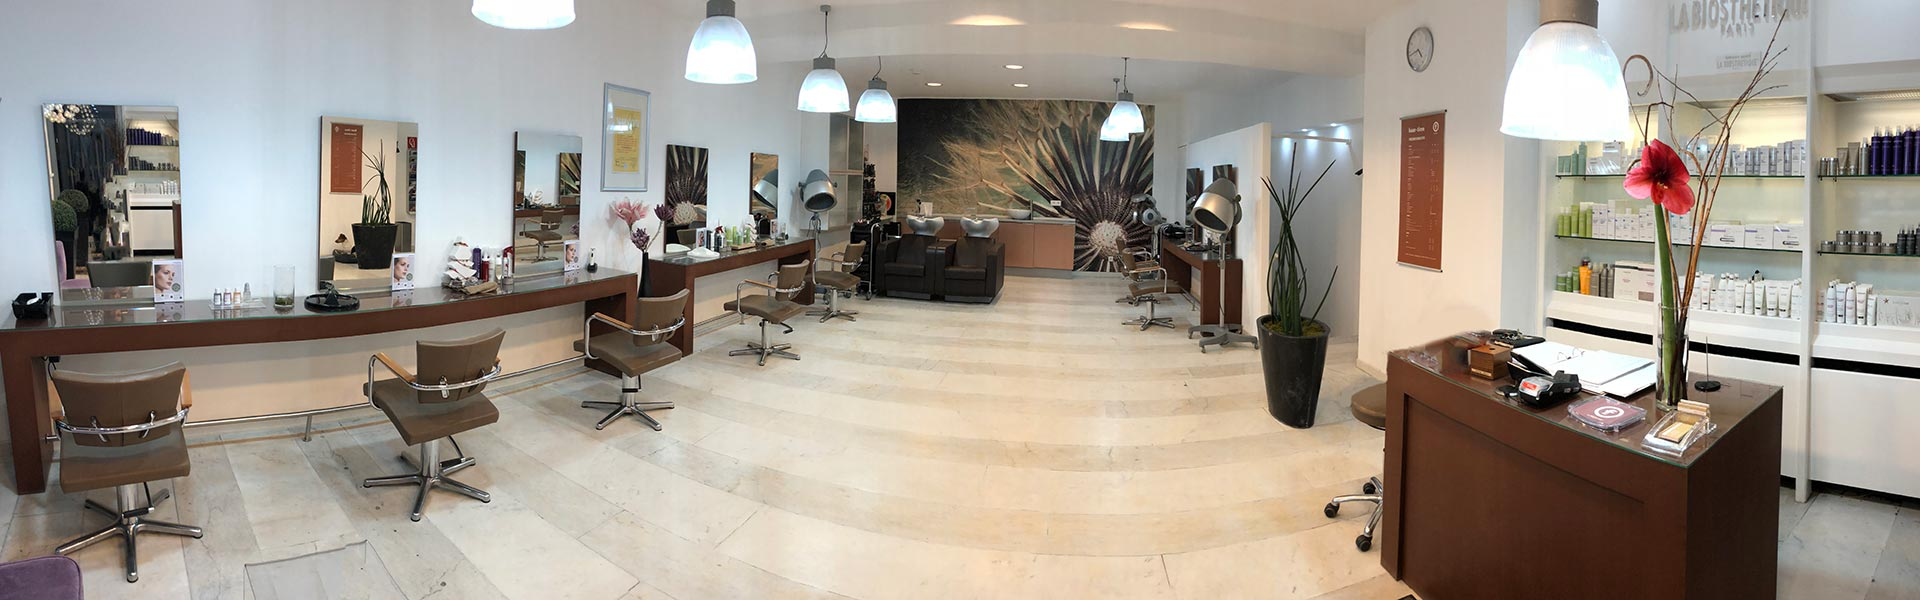 Salon haar-time La Biosthetique Remscheid